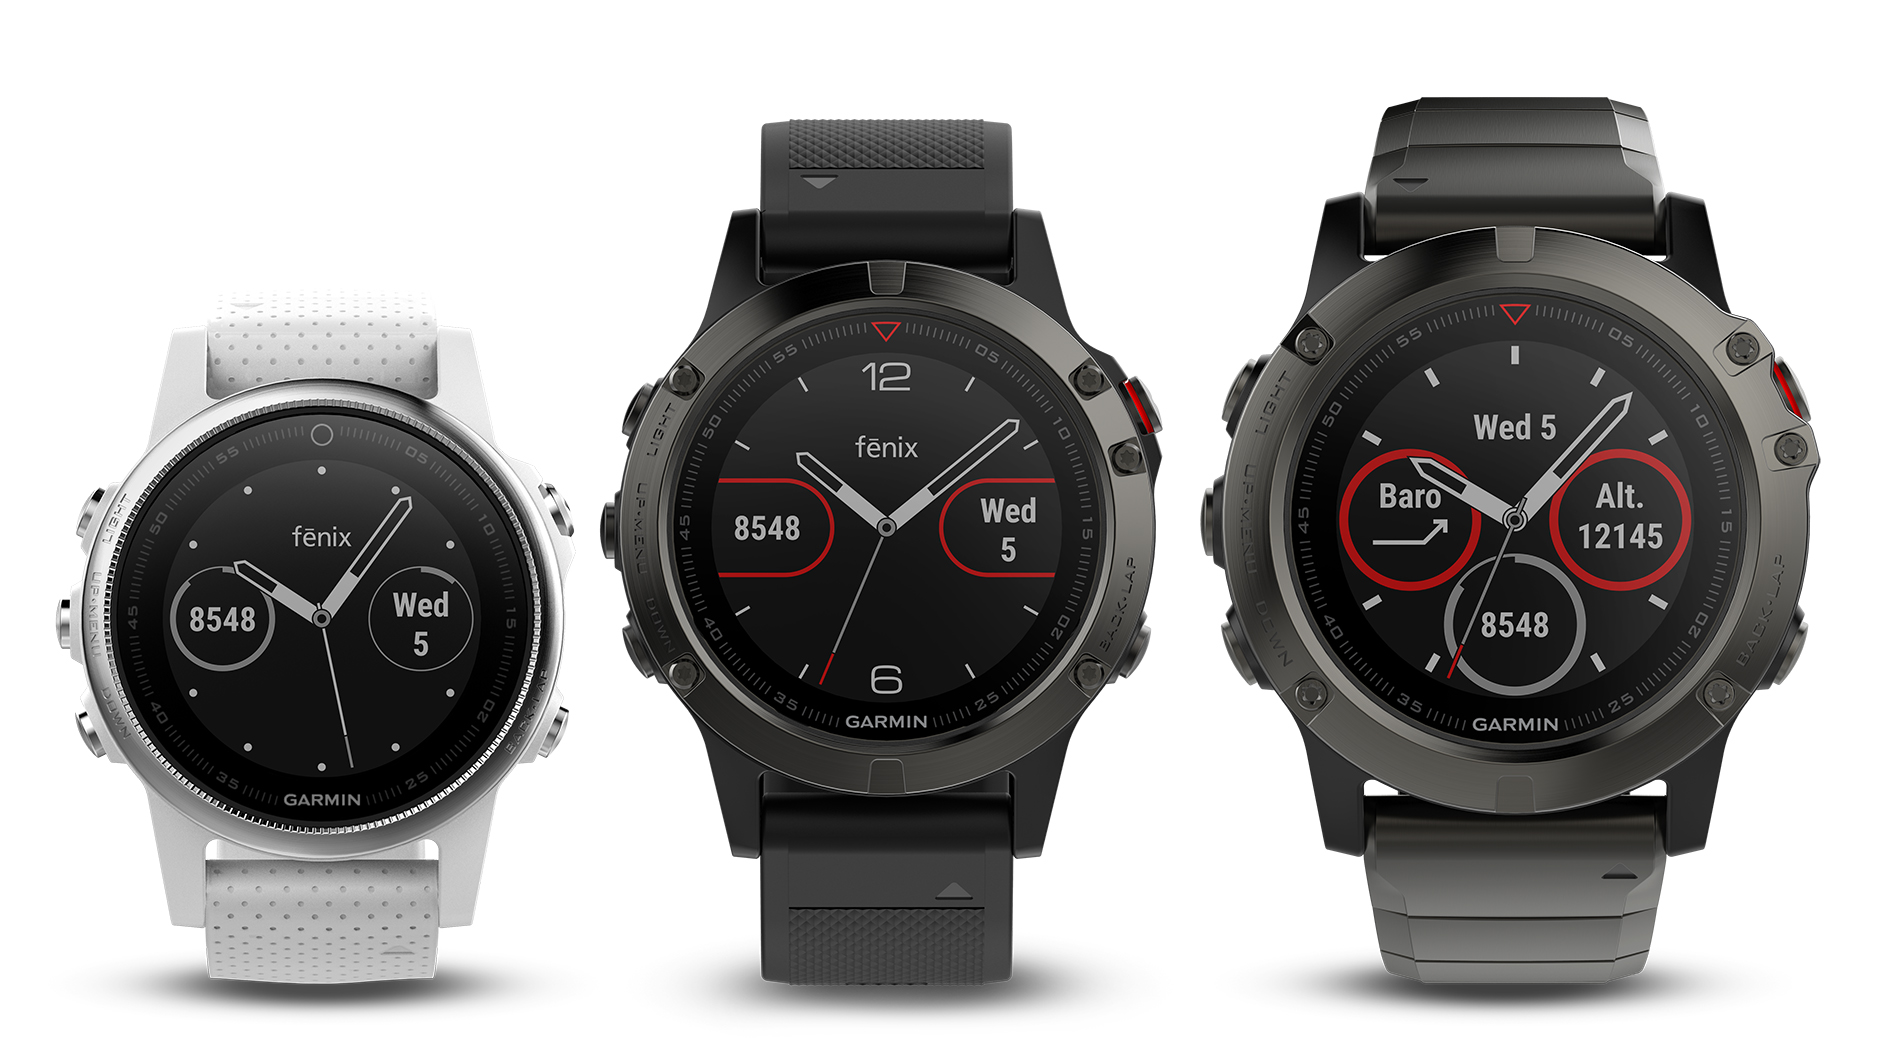 garmin fenix 5 neue gps multisport smartwatch mit. Black Bedroom Furniture Sets. Home Design Ideas